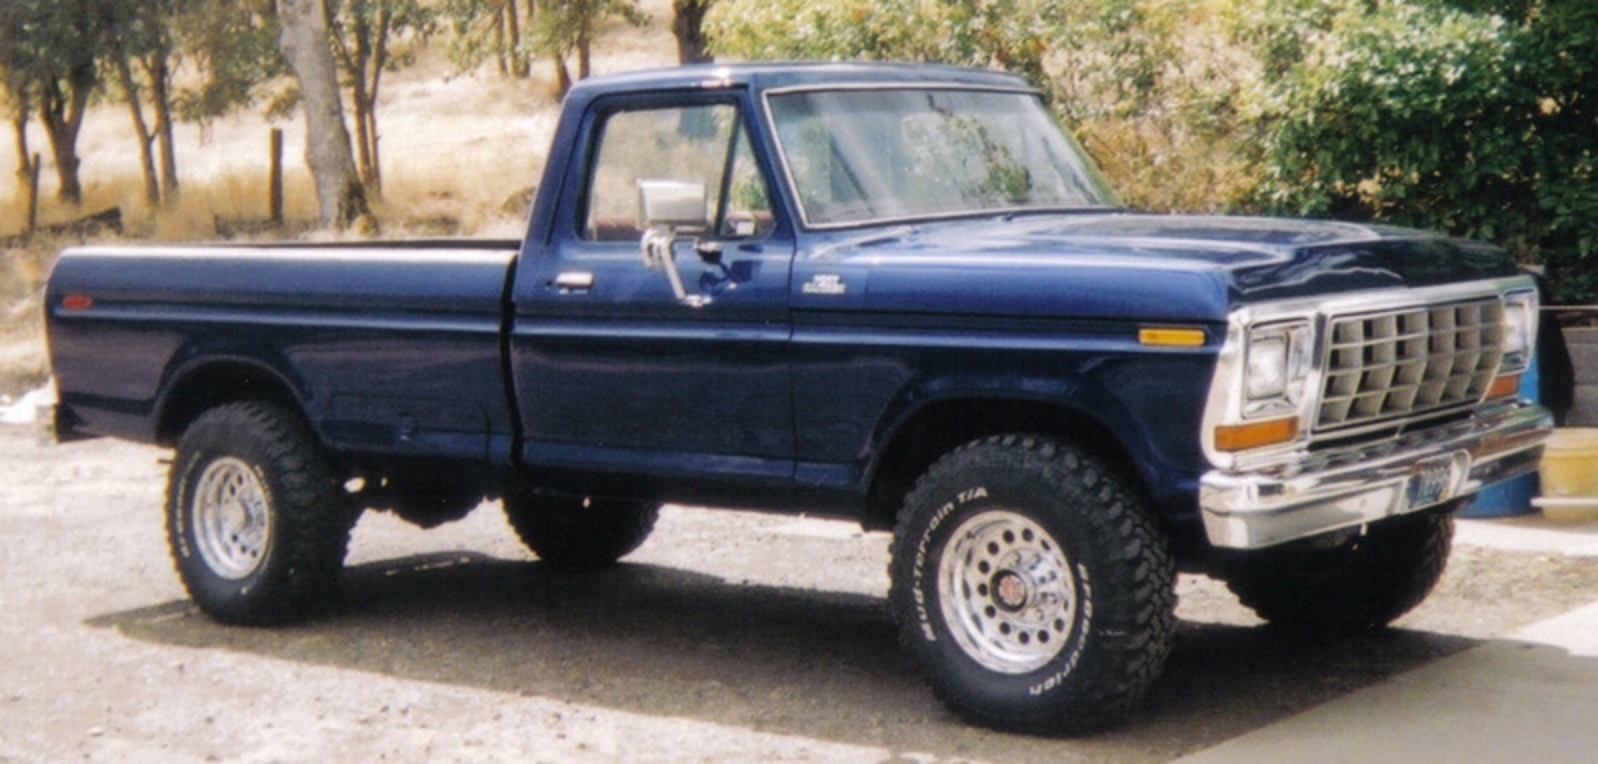 Topworldauto Photos Of Ford F 250 Ranger Photo Galleries 1980 4x4 Pickup View Download Wallpaper 799x382 Comments